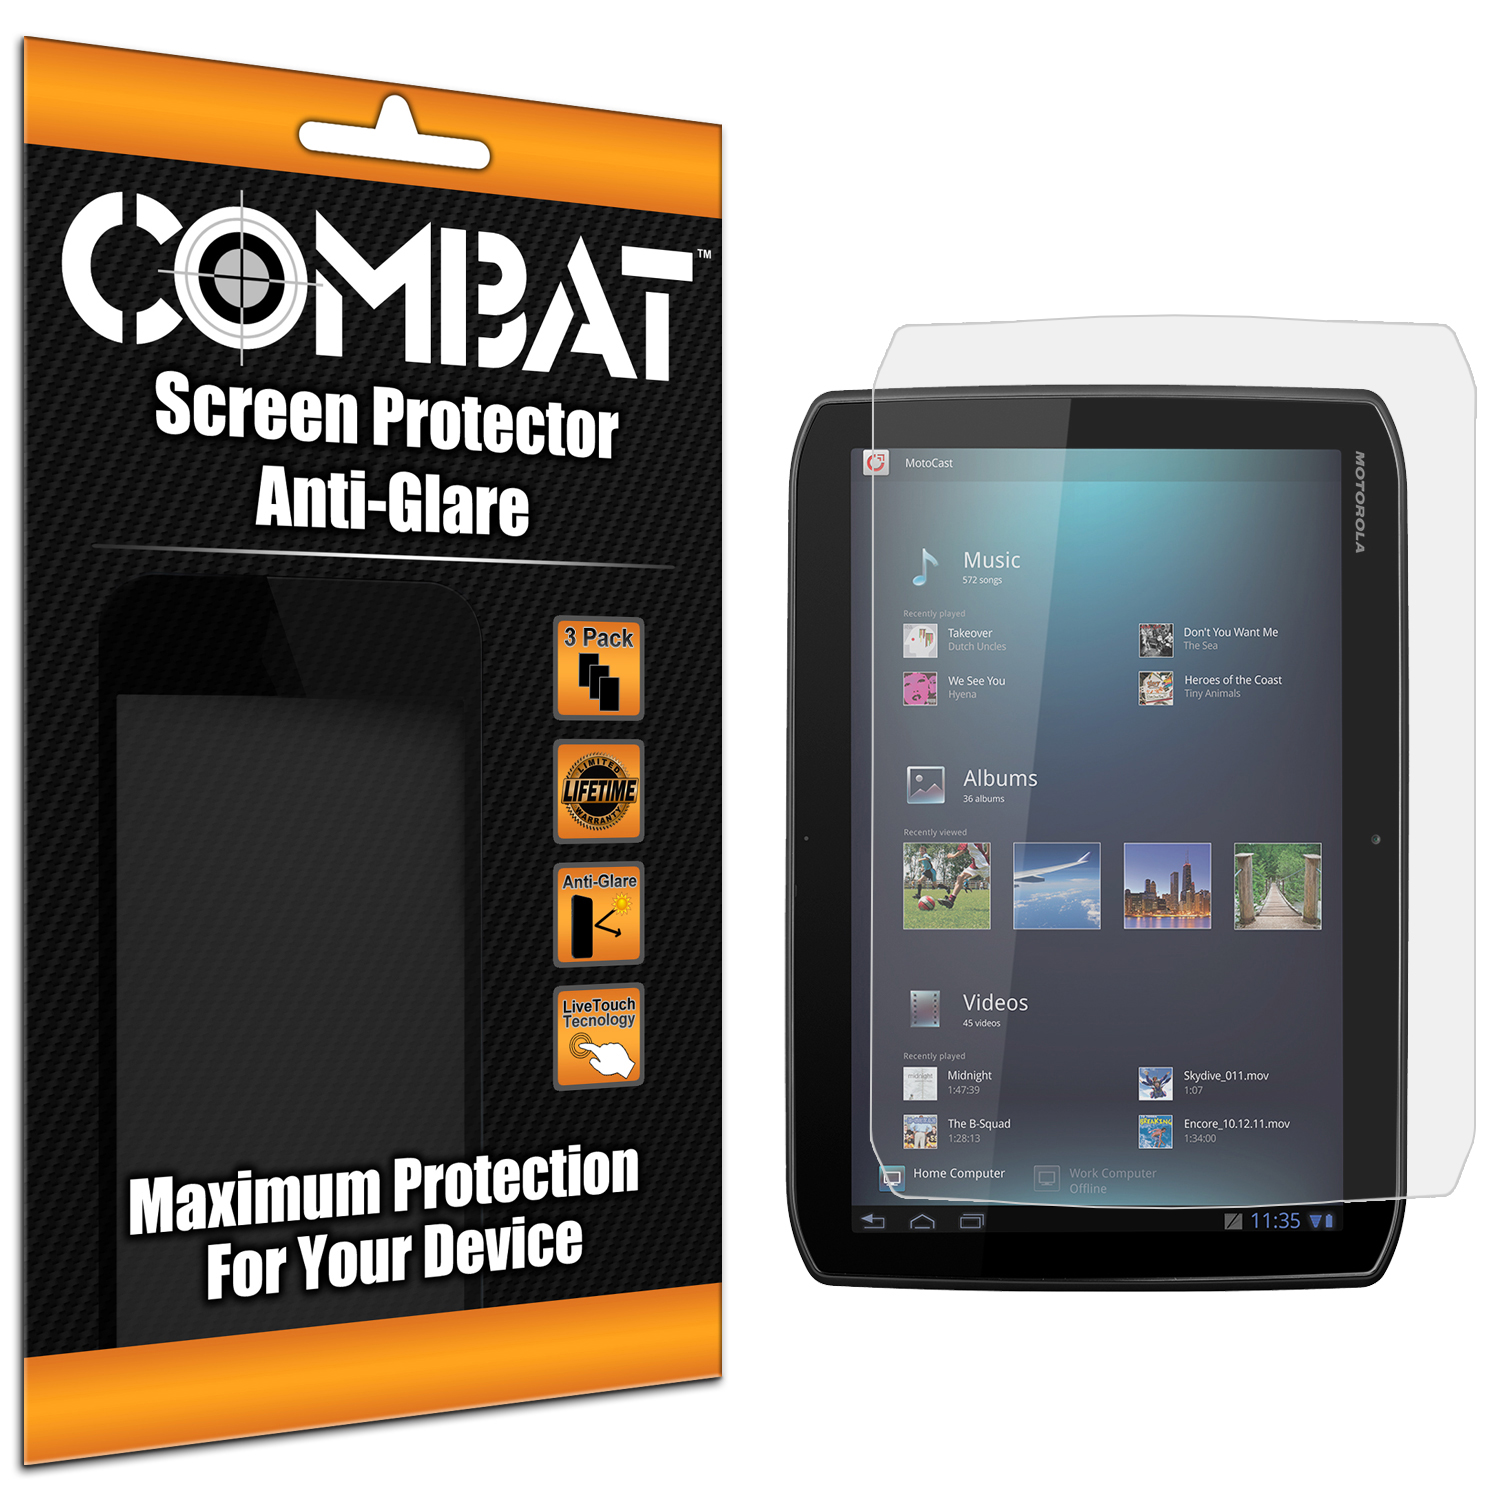 Motorola Droid XYBoard 8.2 Combat 3 Pack Anti-Glare Matte Screen Protector